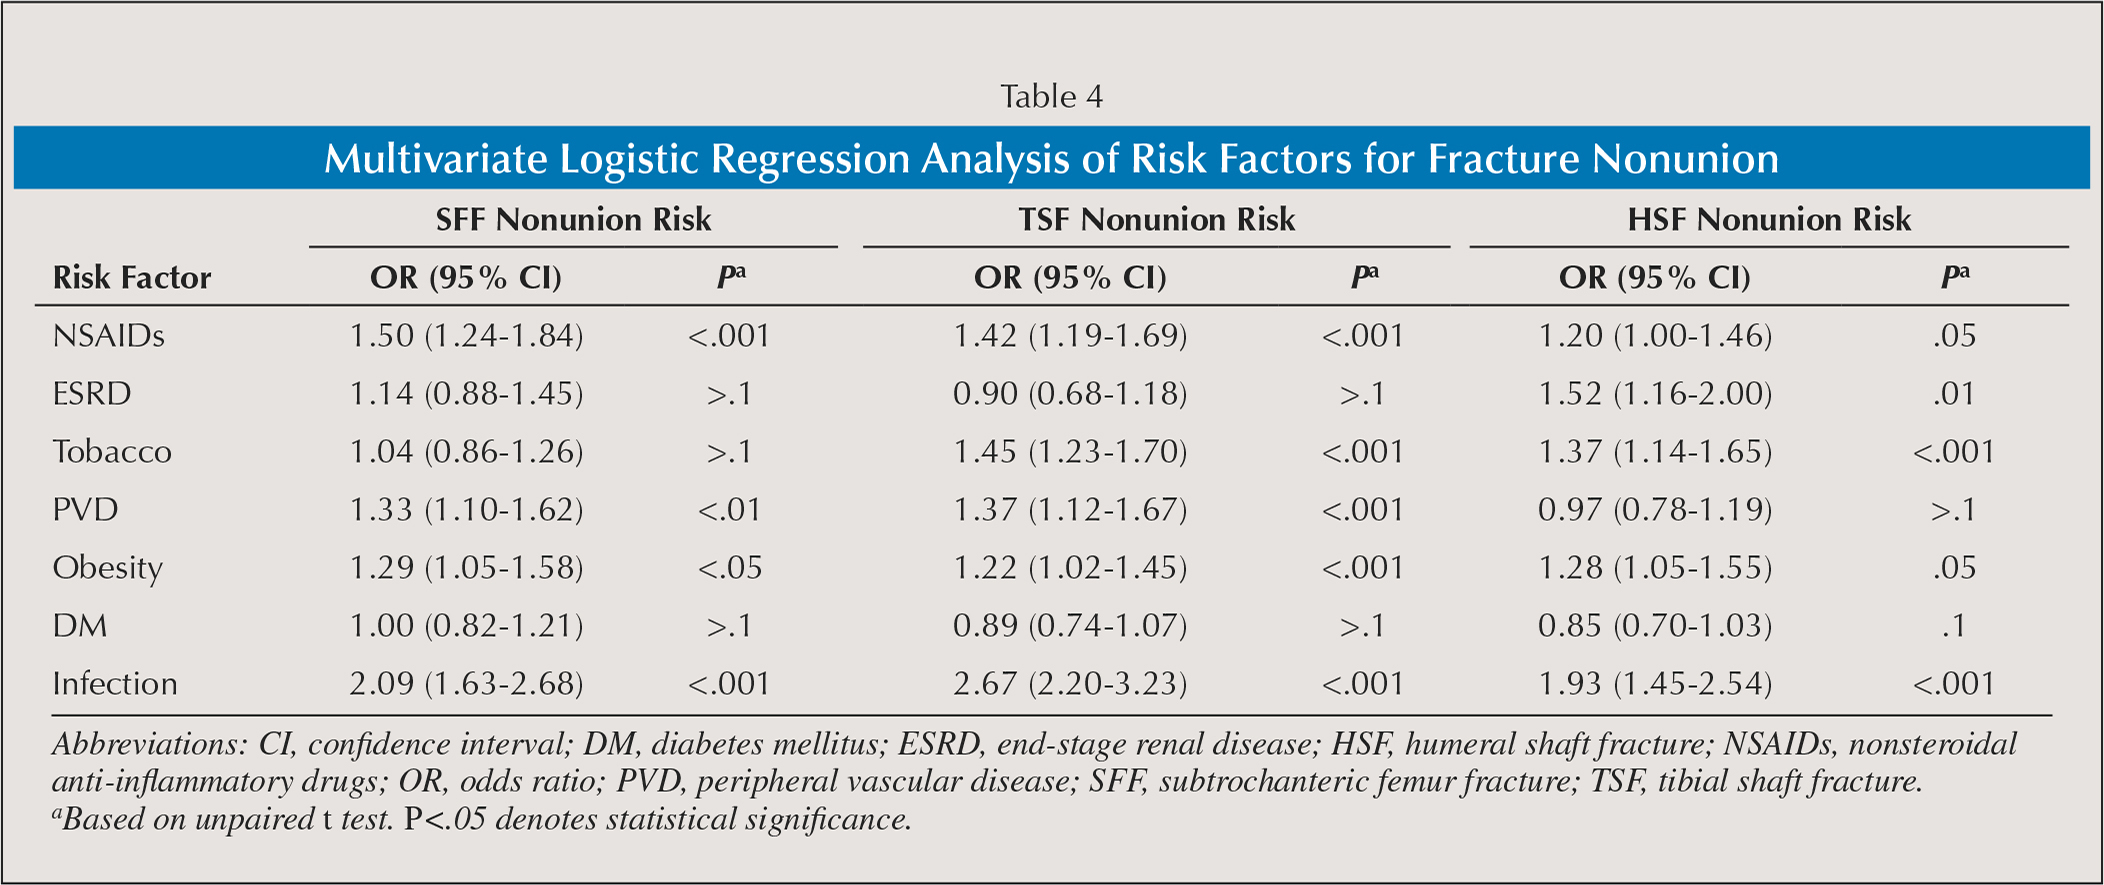 Multivariate Logistic Regression Analysis of Risk Factors for Fracture Nonunion